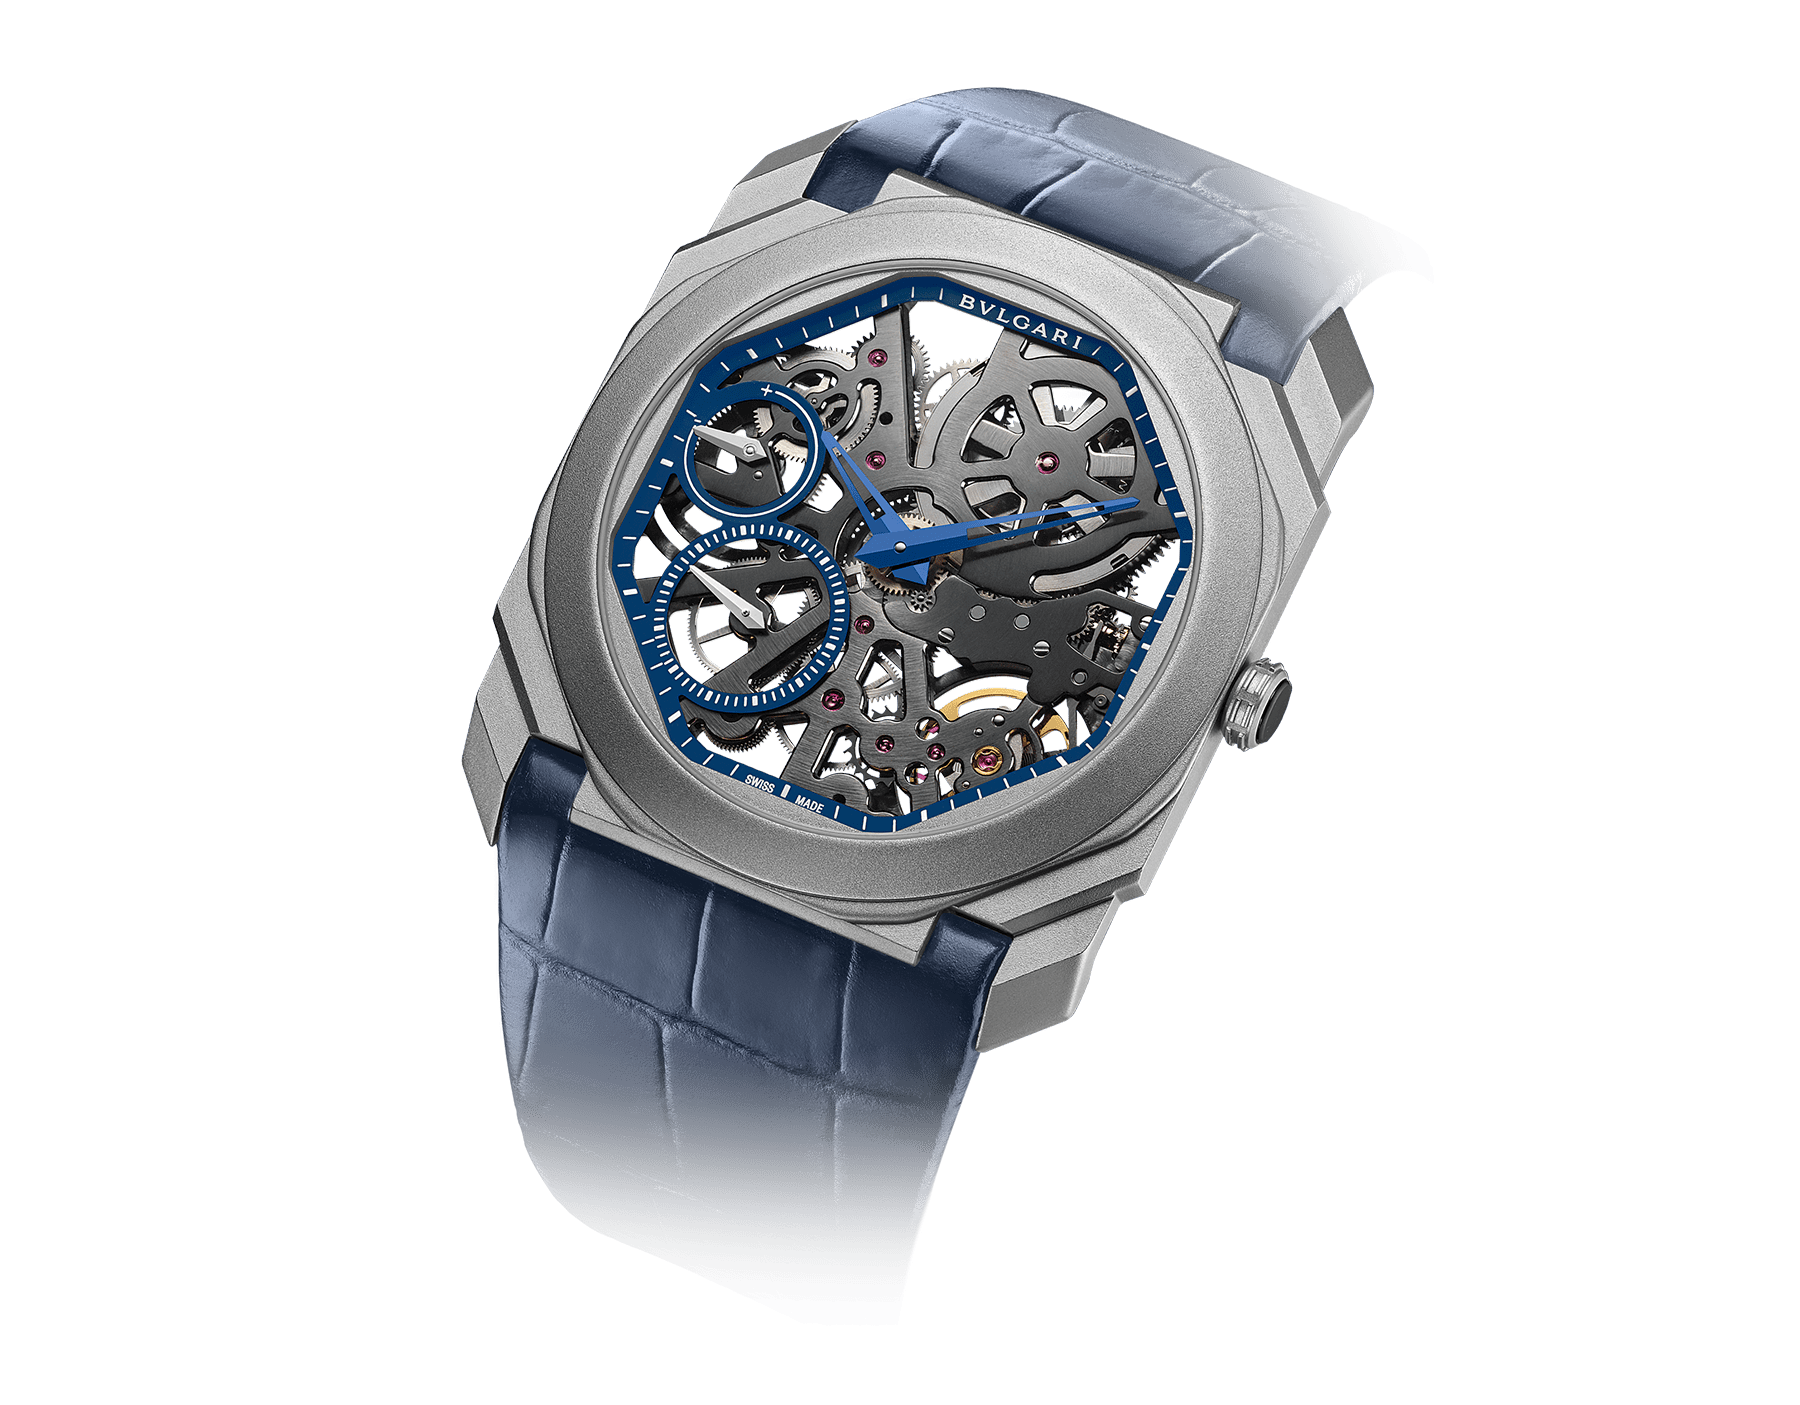 Octo Finissimo Skeleton Limited Edition watch with extra-thin mechanical manufacture movement (2.23mm thick), manual winding, small seconds, power reserve indication, sandblasted titanium case, skeletonized blue dial, blue hands and blue alligator bracelet 102941 image 2